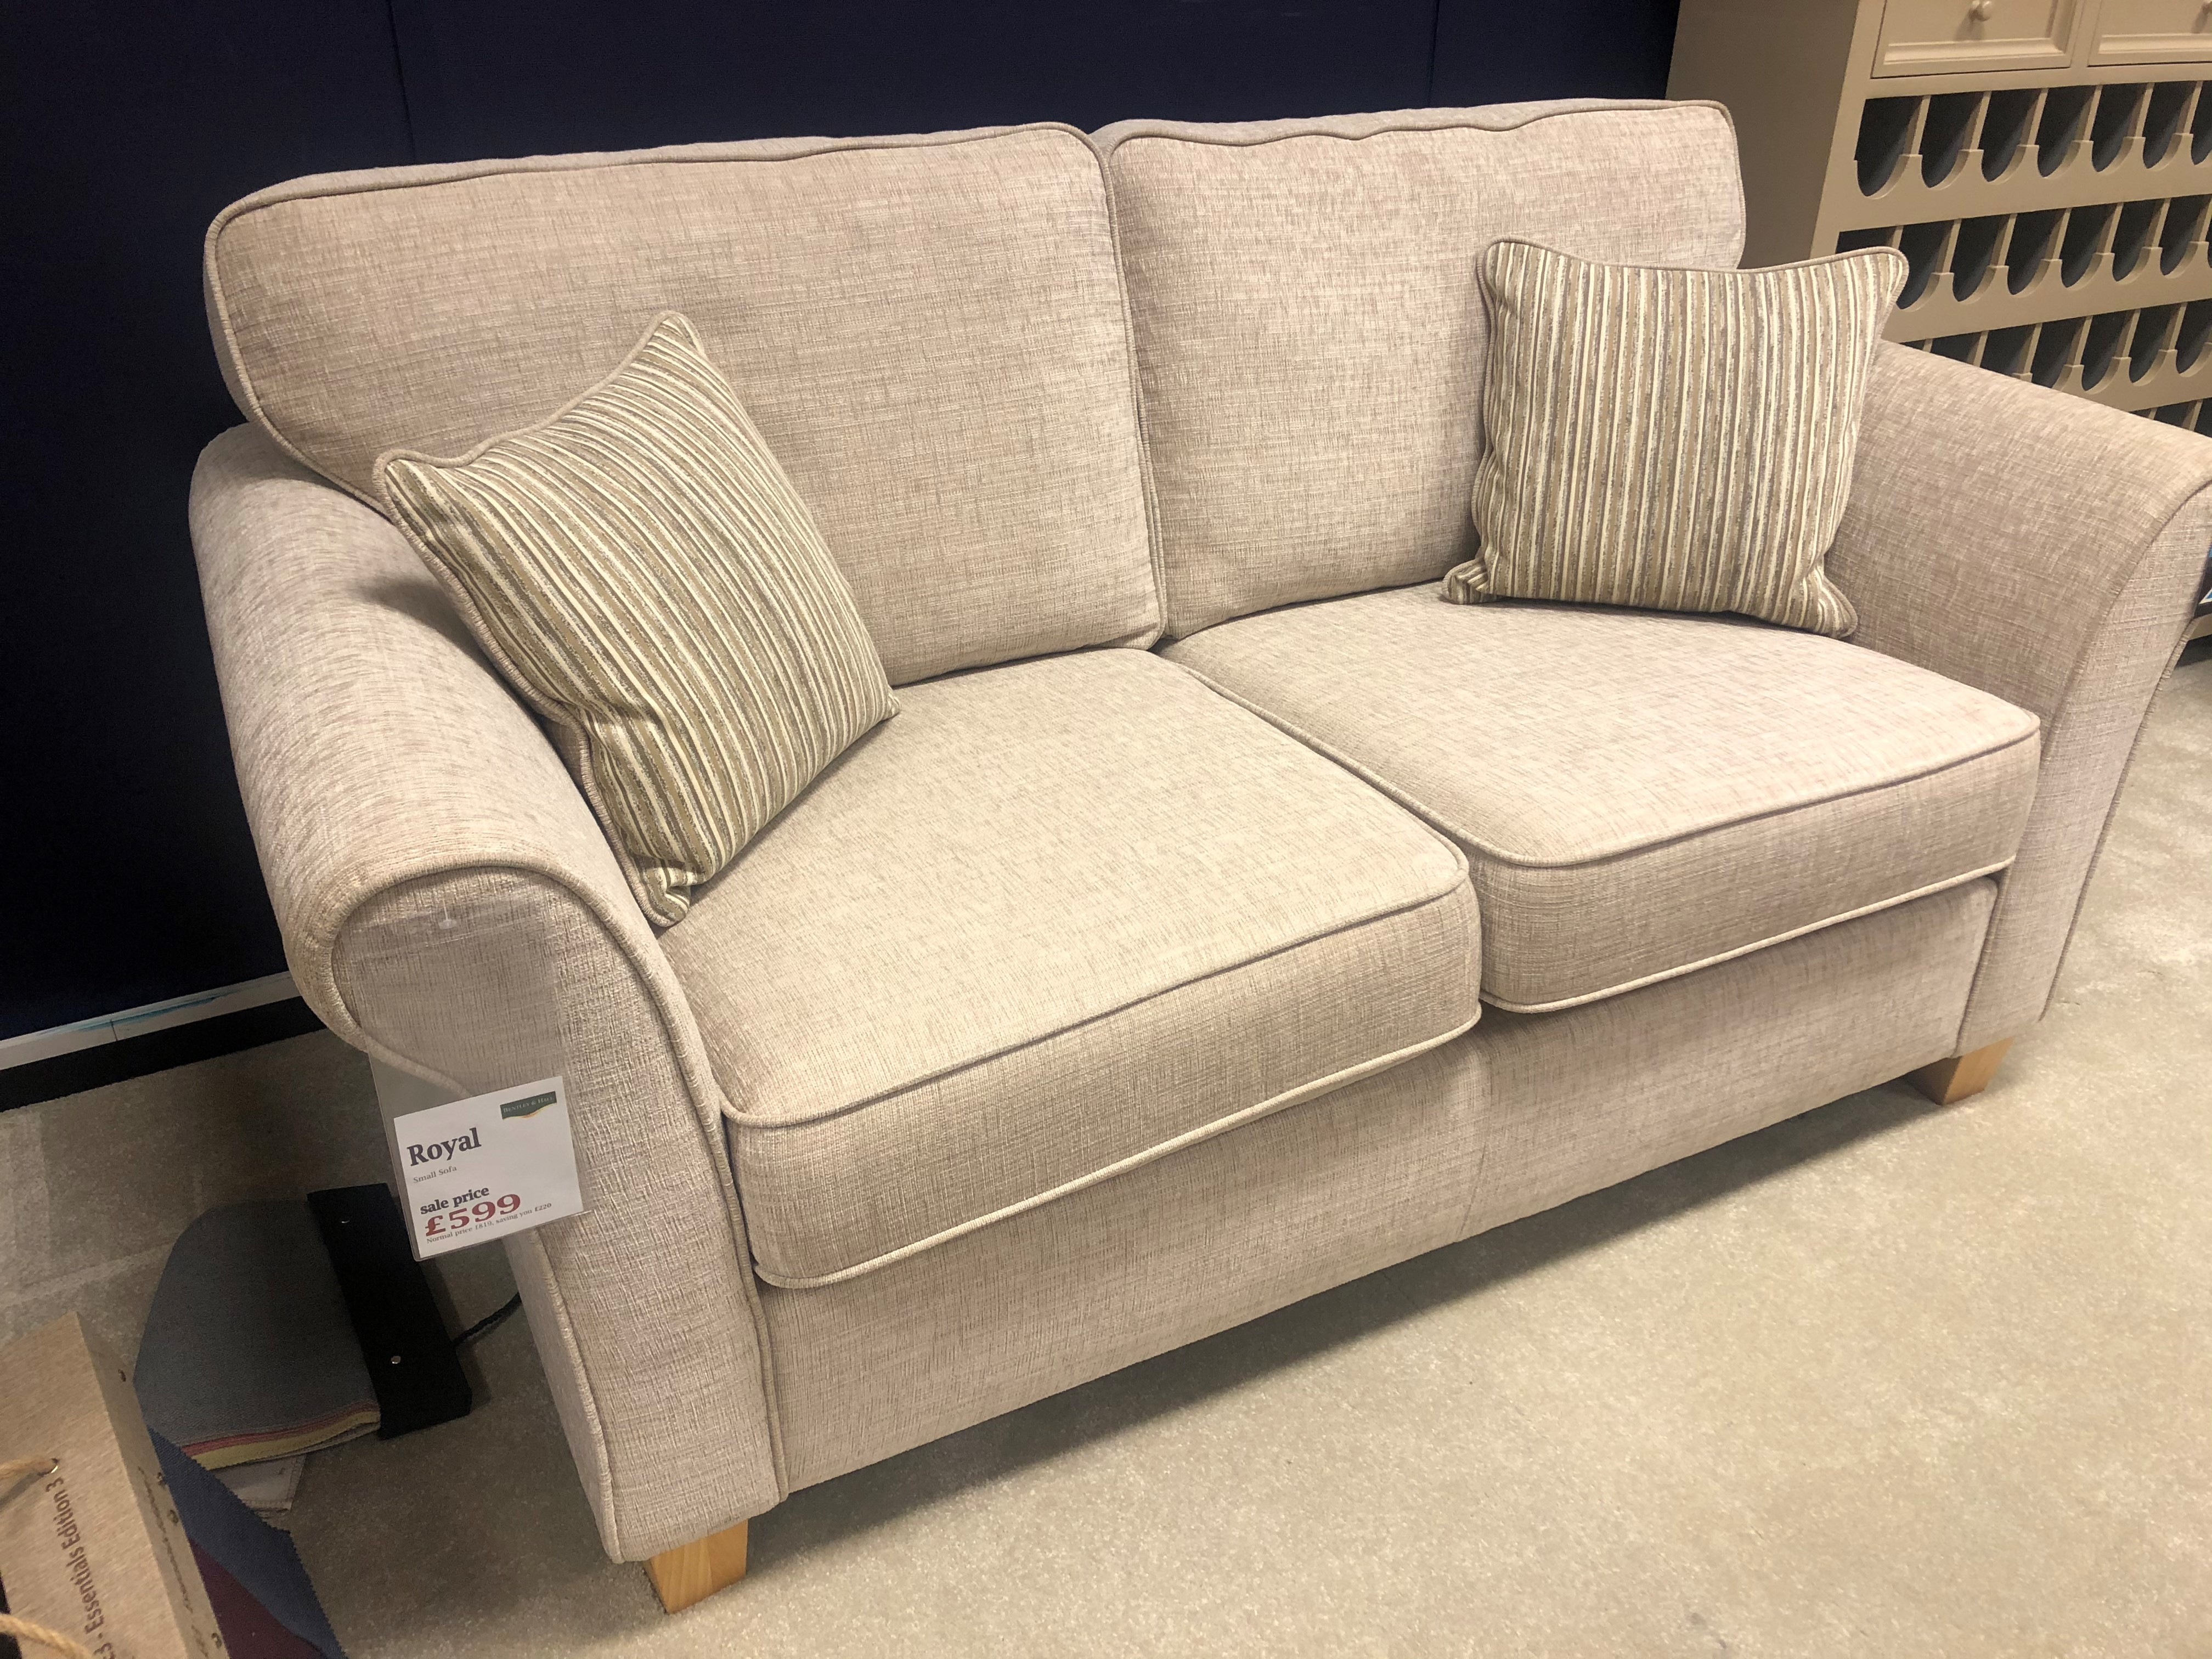 Royal 2 Seater Sofa